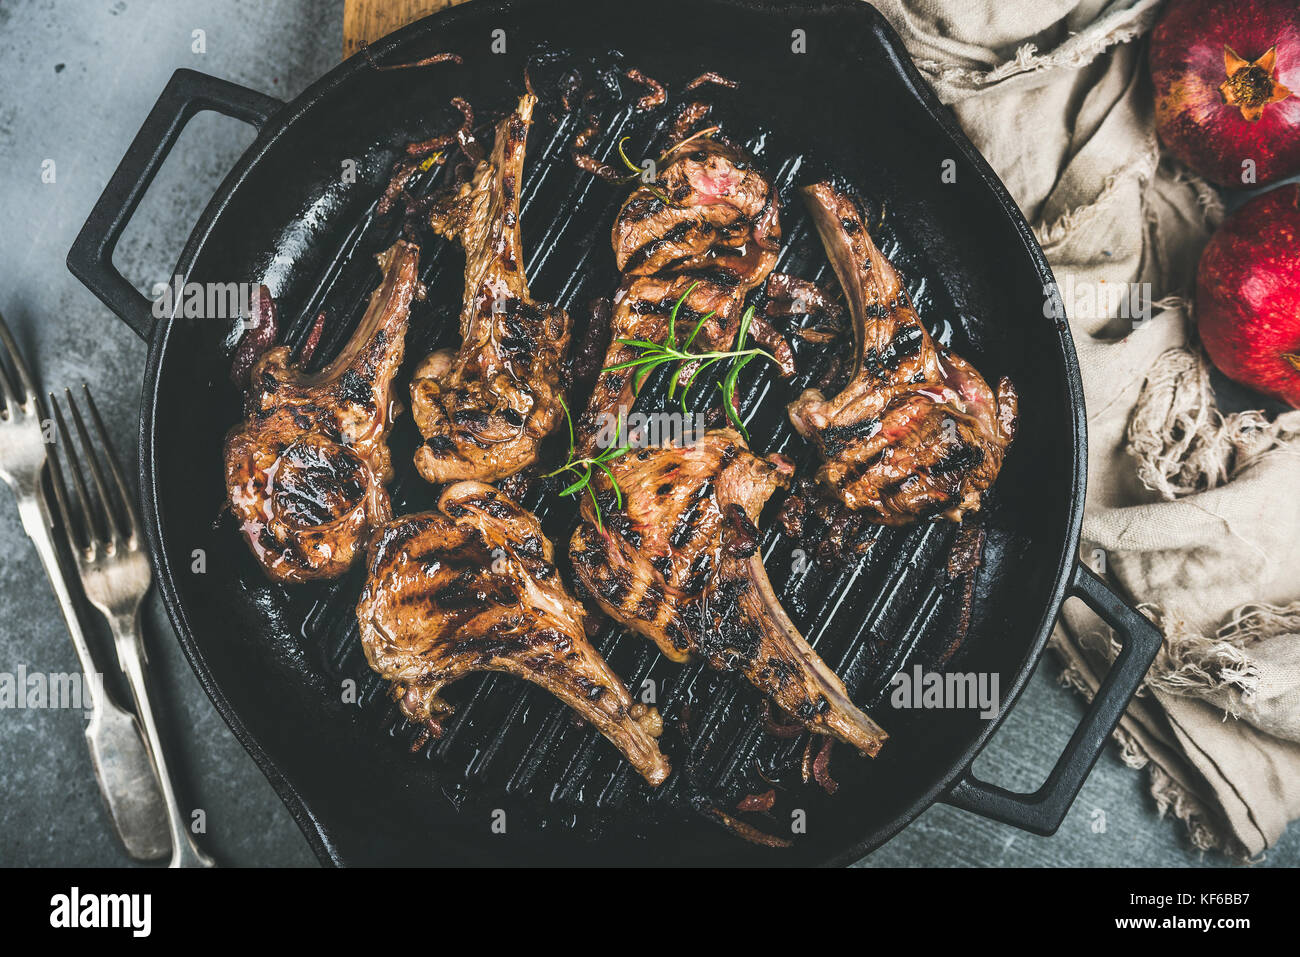 Barbecue dinner with grilled lamb meat chops in pan - Stock Image